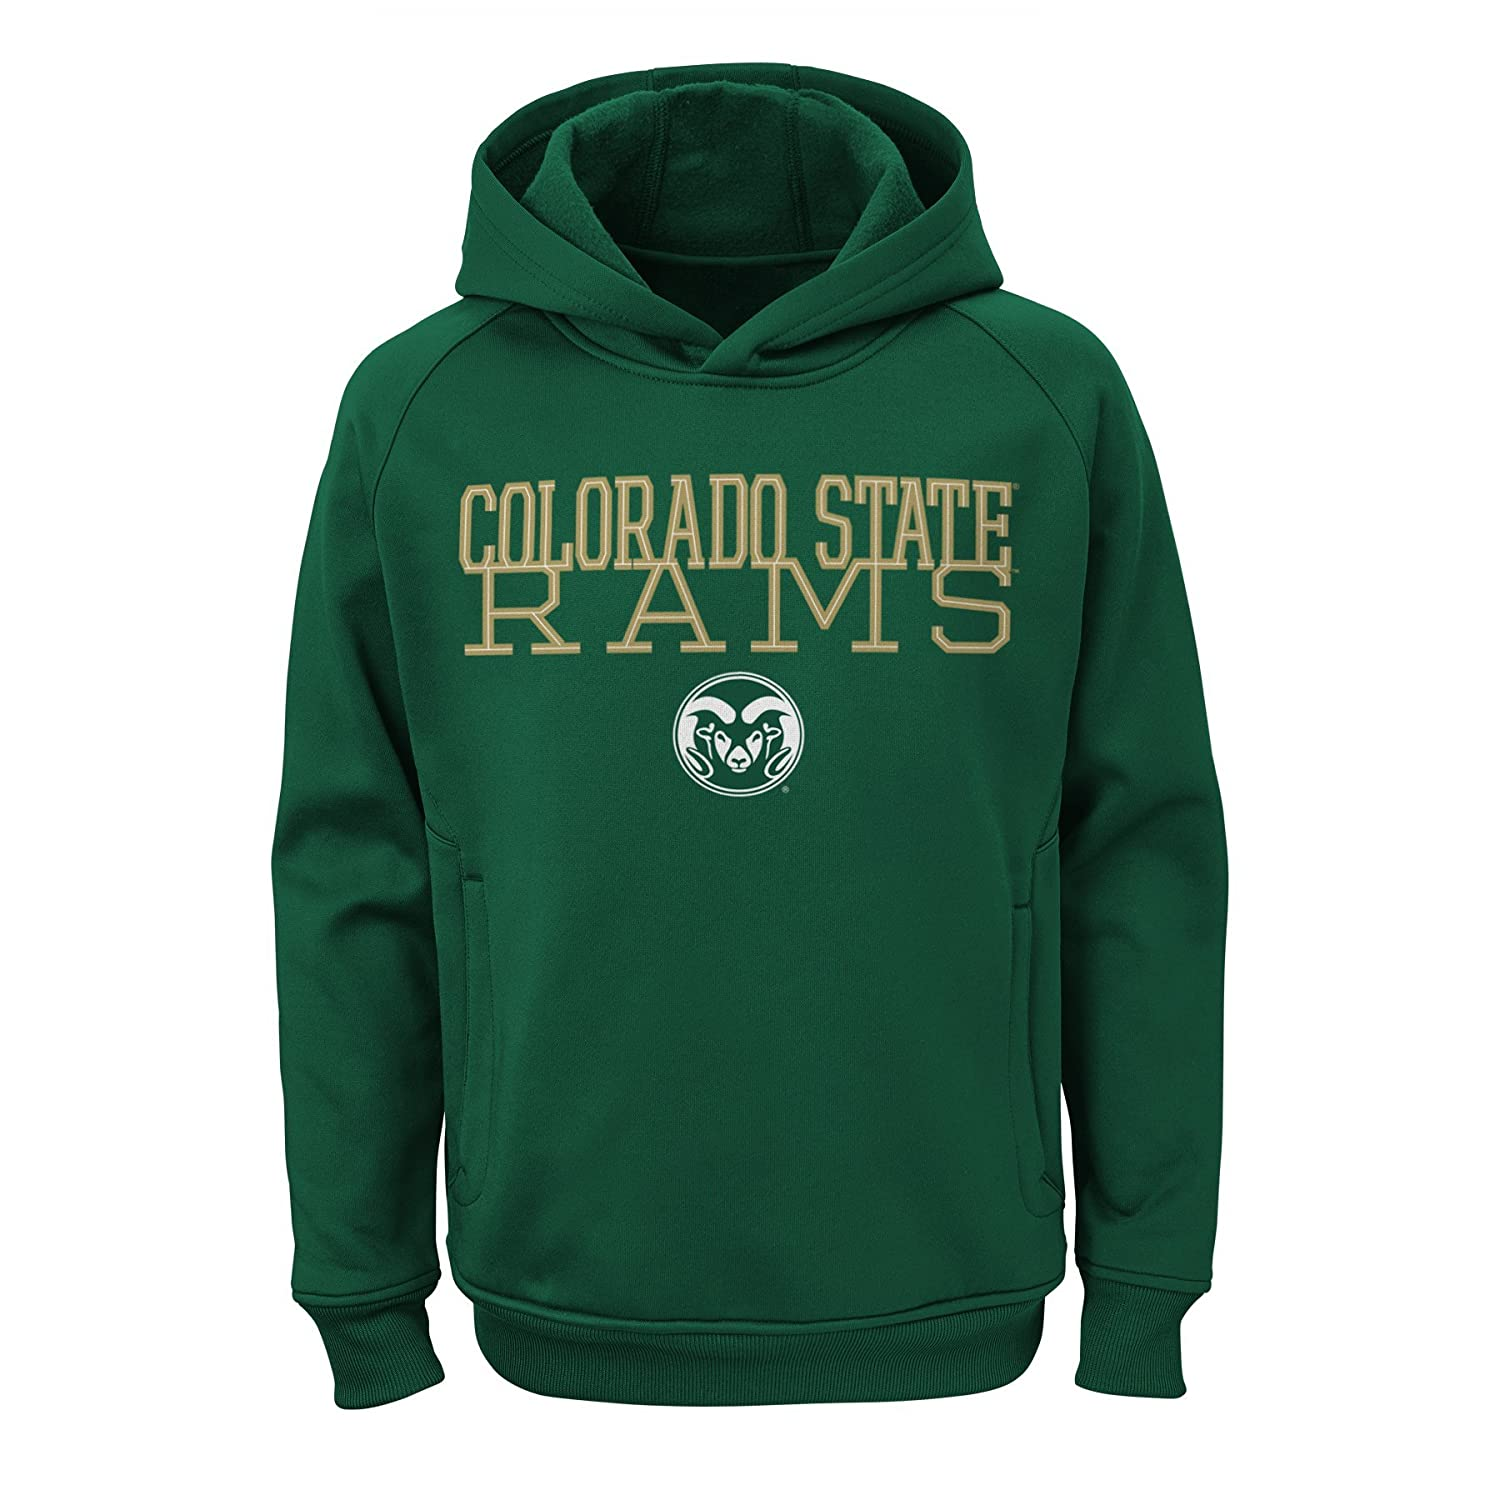 Youth Large NCAA Colorado State Rams Boys Outerstuff Overlap Performance Pullover Hoodie 12-14 Team Color